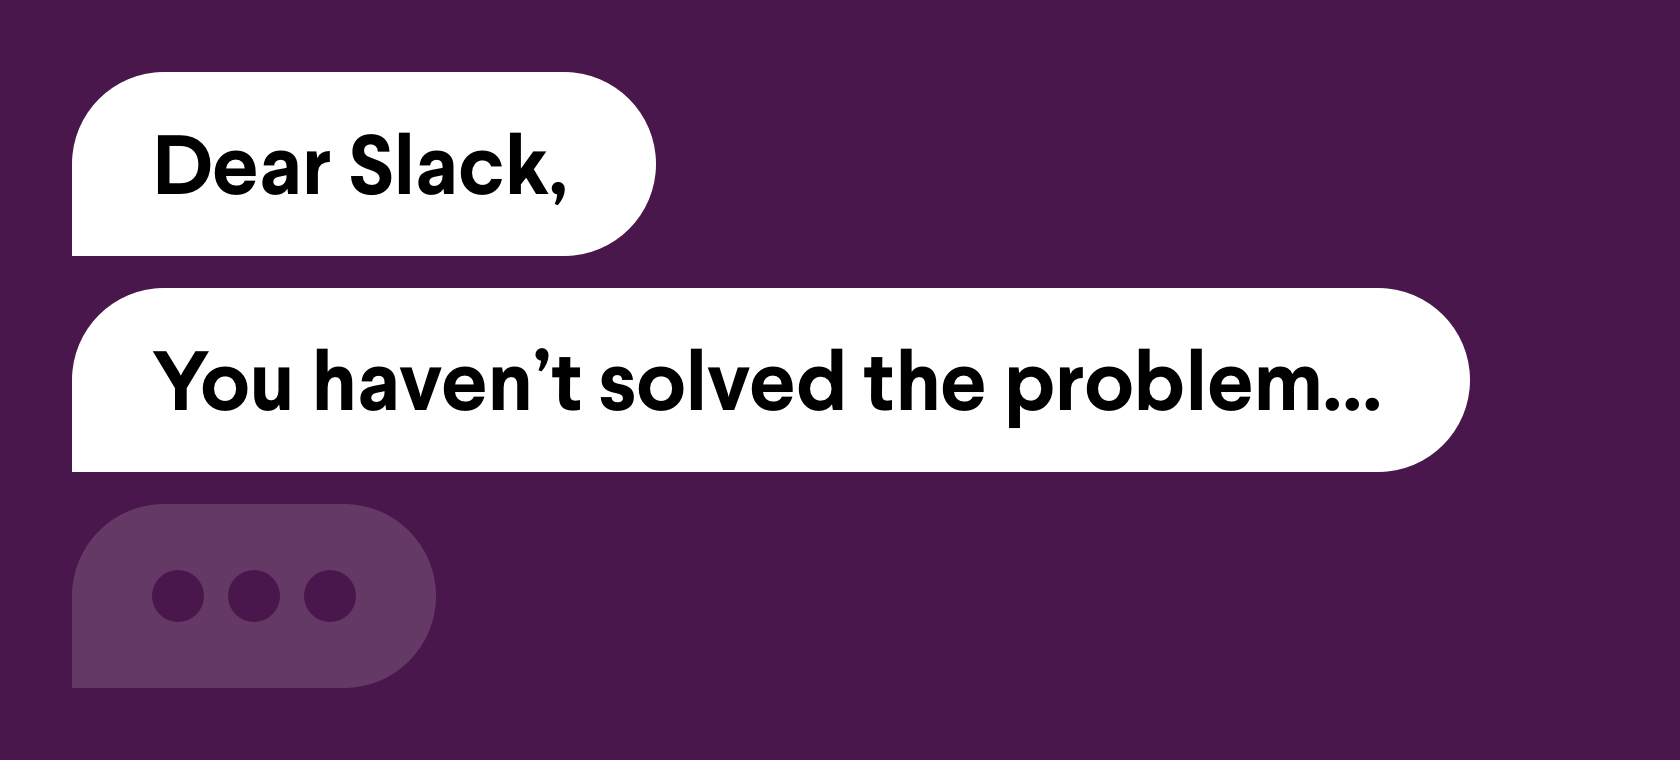 Dear Slack, You haven't solved the problem...